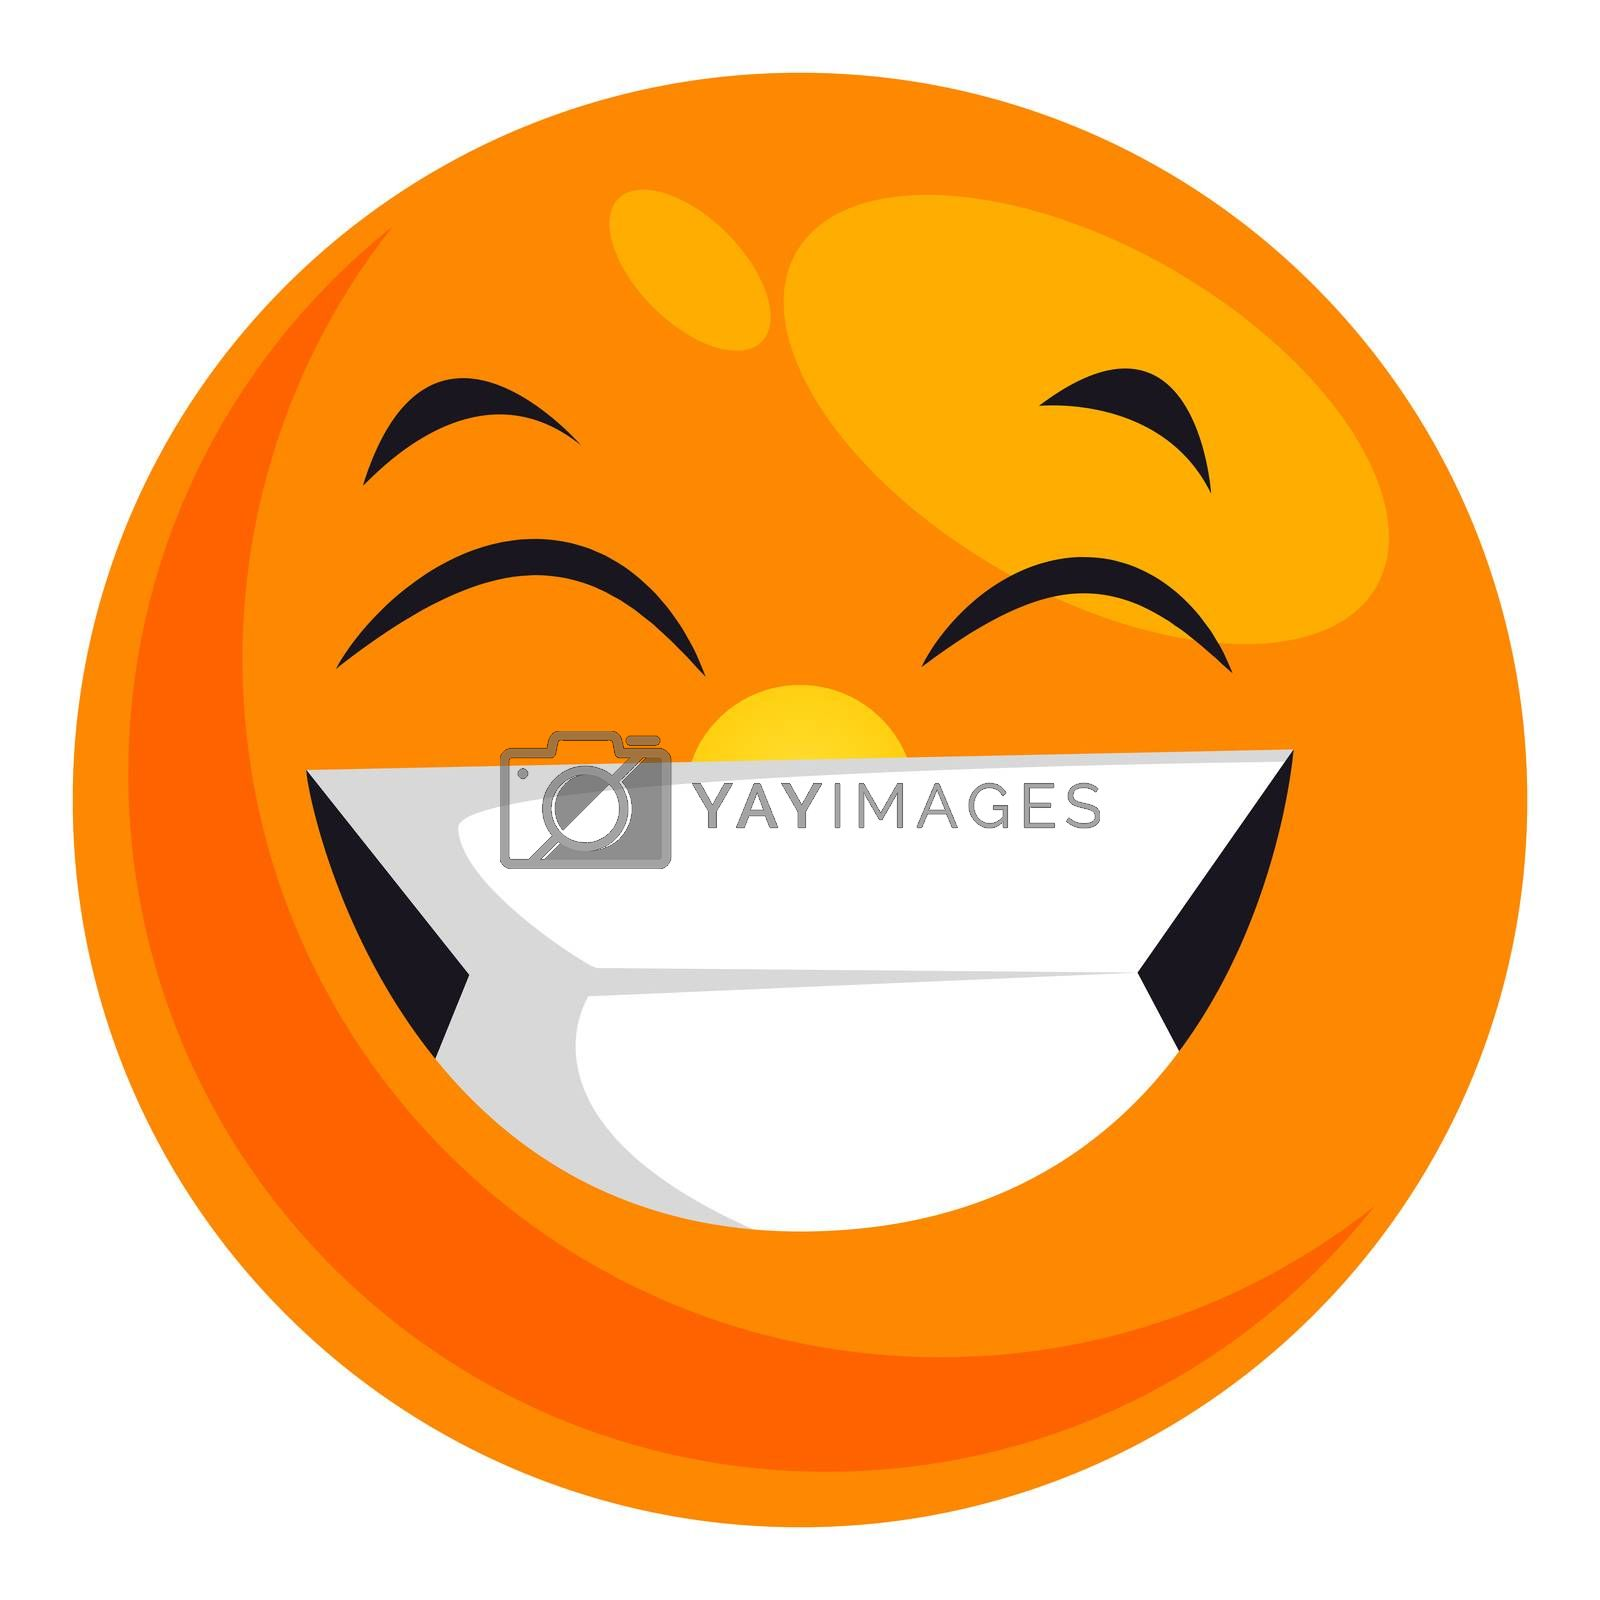 Royalty free image of Happy smiling emoji, illustration, vector on white background by Morphart